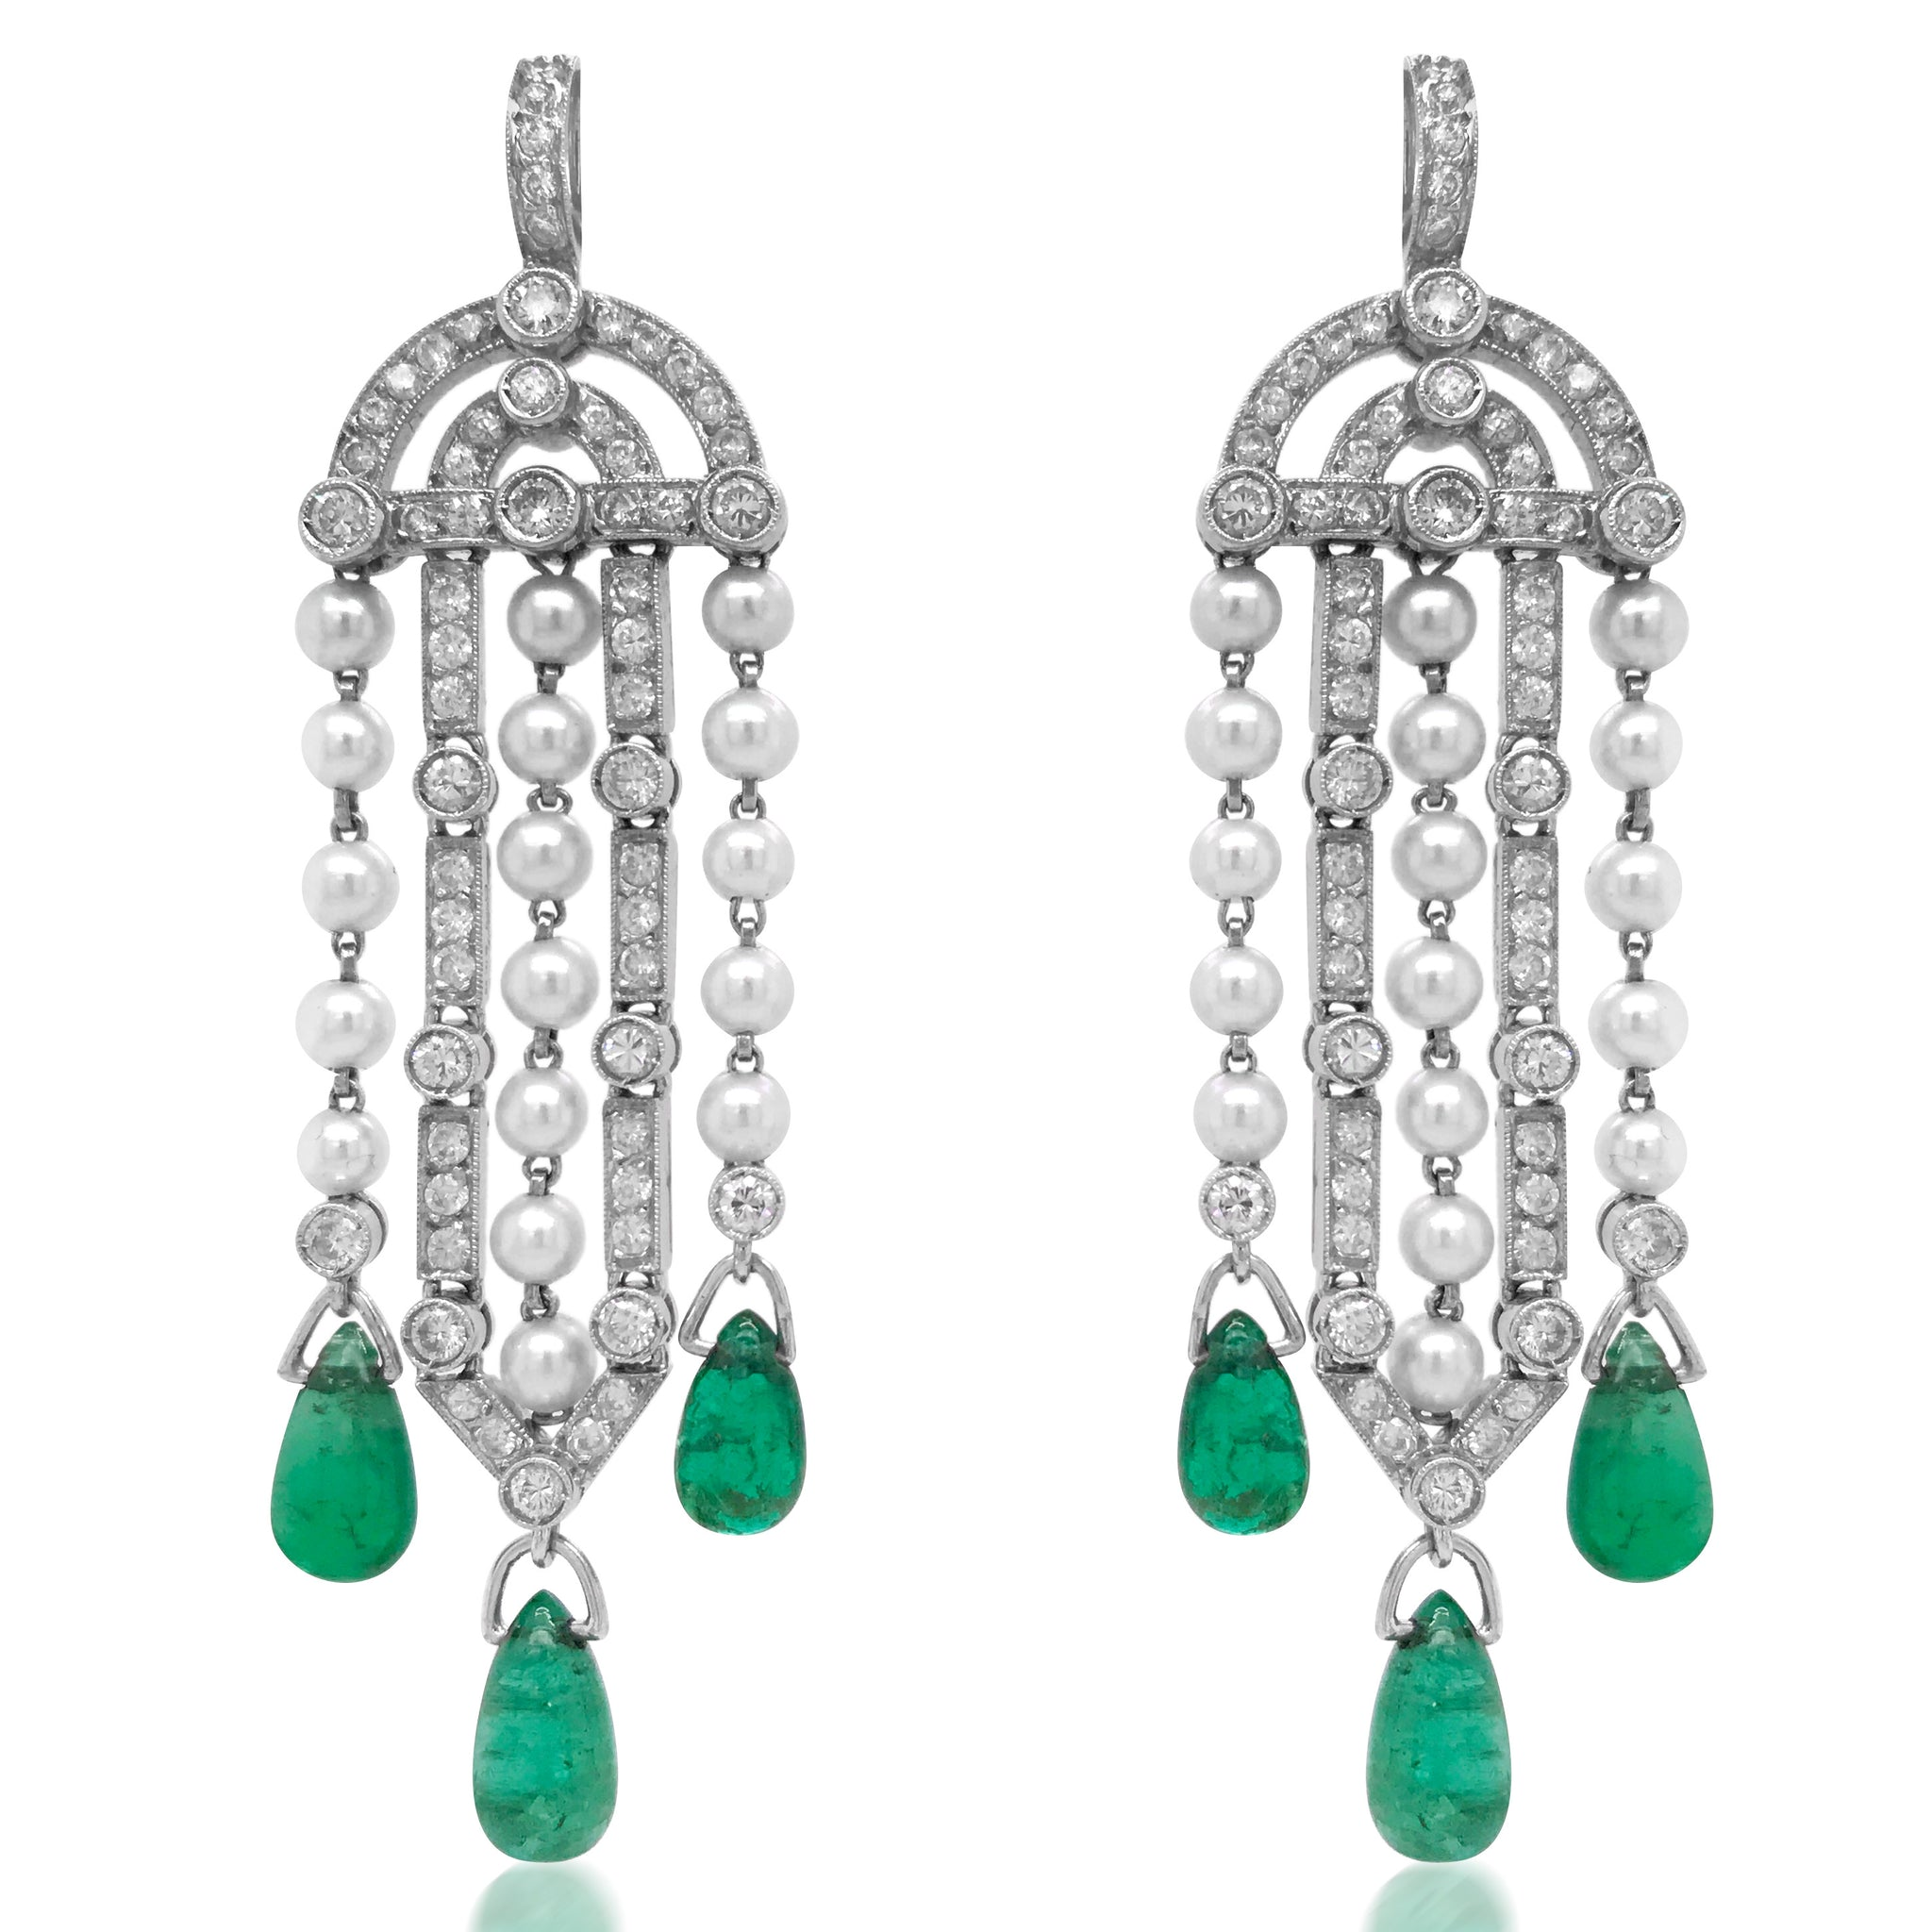 Pearl Diamond Earrings with Pear-shaped Emerald Droplets - Lueur Jewelry